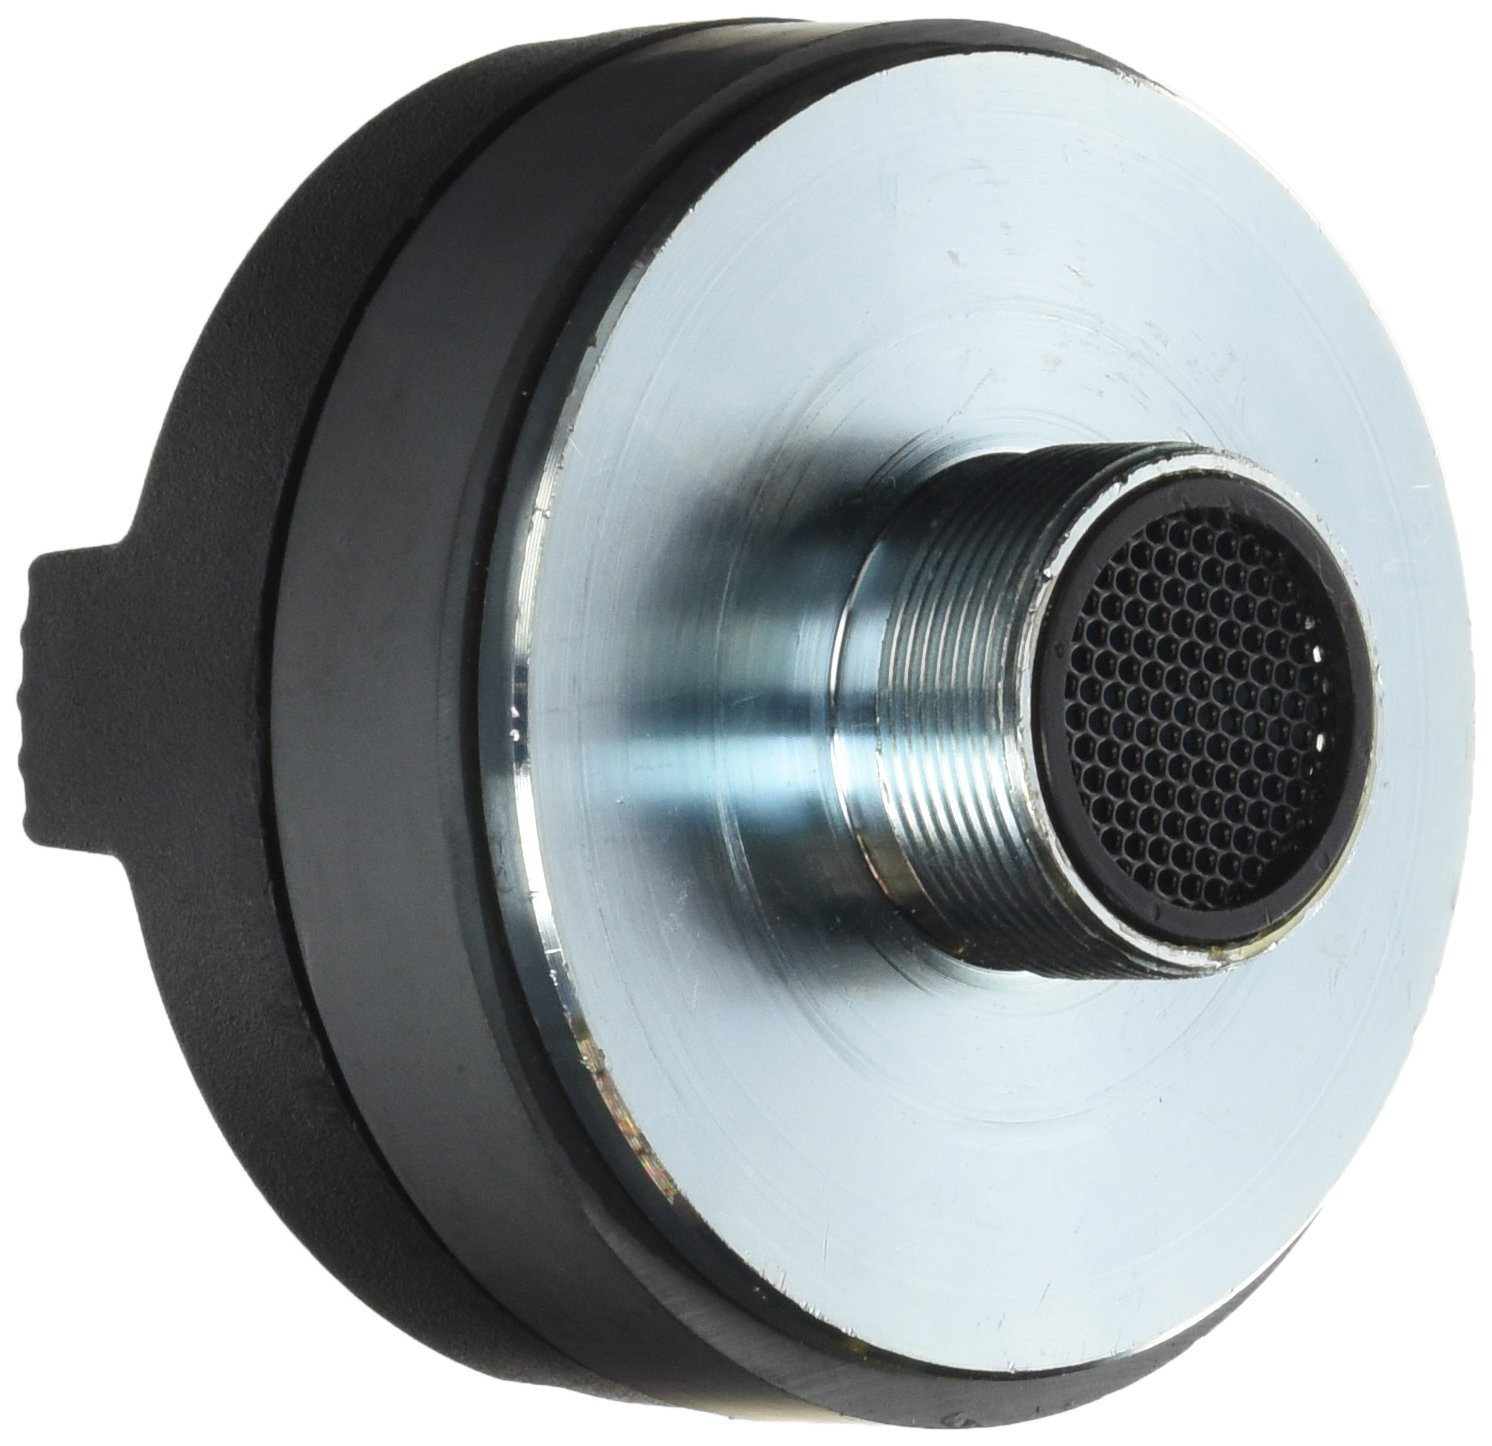 1.5 Inch Tweeter Horn Driver - 500 Watt High Power Car Audio Speaker Tweeter System w/ Flat Aluminum Voice Coil, 1.5k-20 kHz Frequency, 95 dB, 8Ohm, Heavy Duty 30 oz Magnet Structure - Pyle PDS122